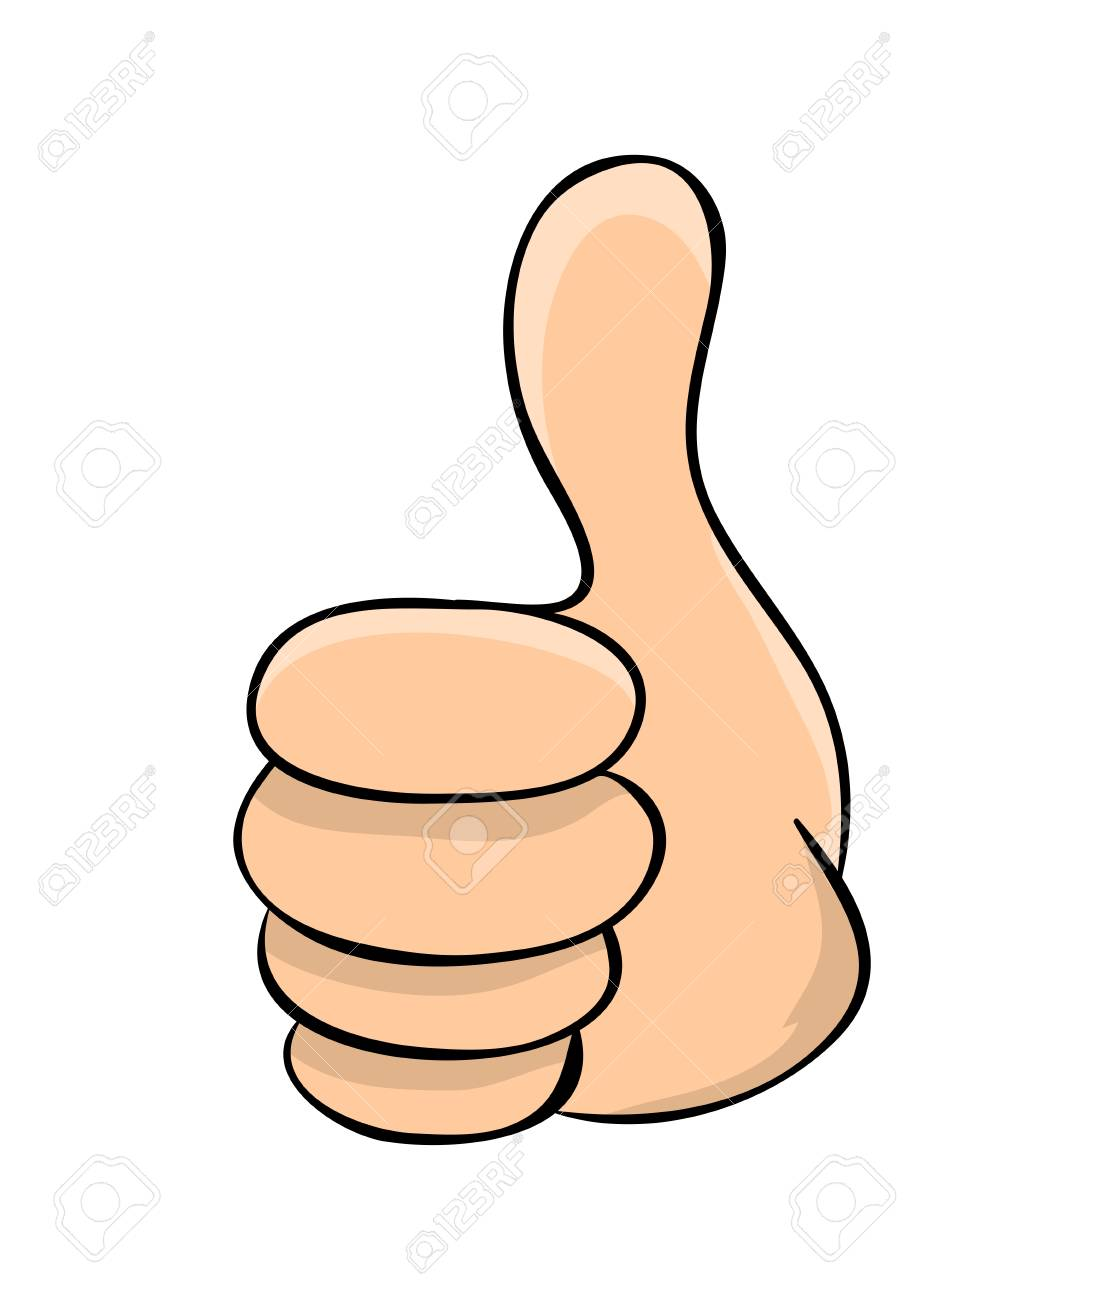 hand thumb up cartoon vector symbol icon design beautiful illustration royalty free cliparts vectors and stock illustration image 85204269 hand thumb up cartoon vector symbol icon design beautiful illustration